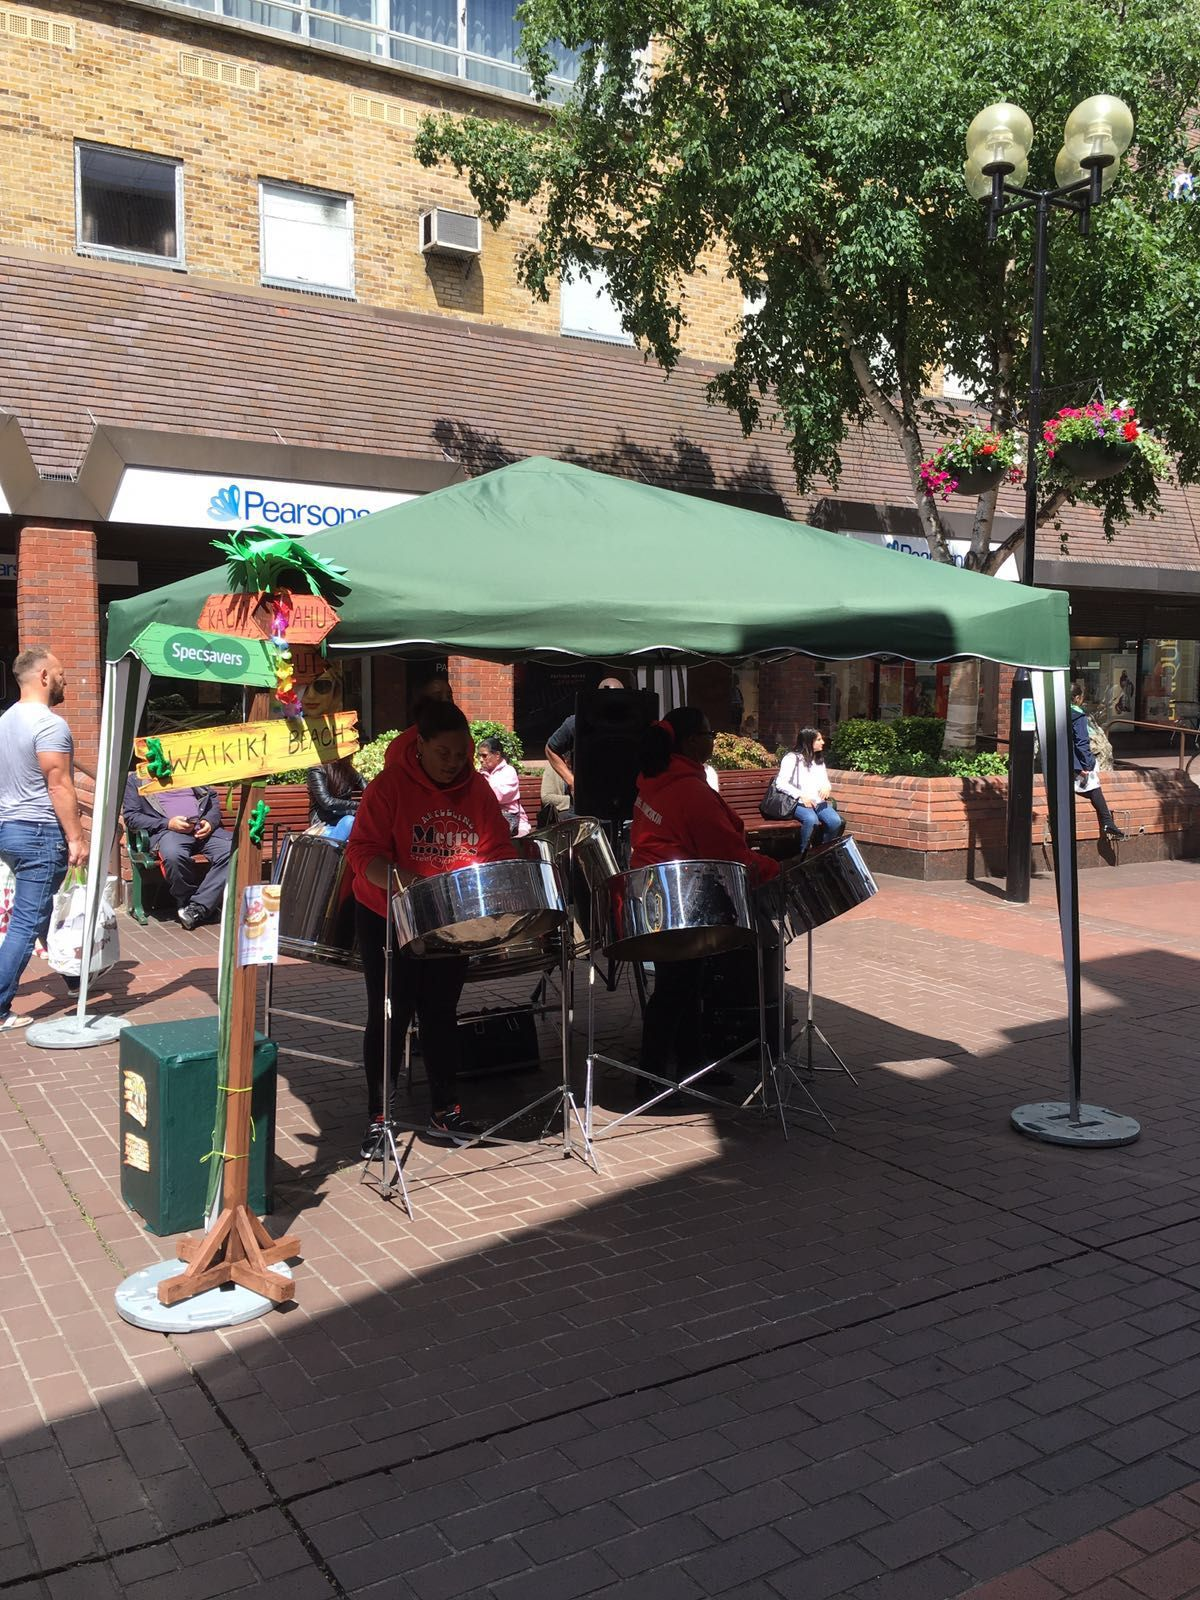 The steel drum performers really set the mood!